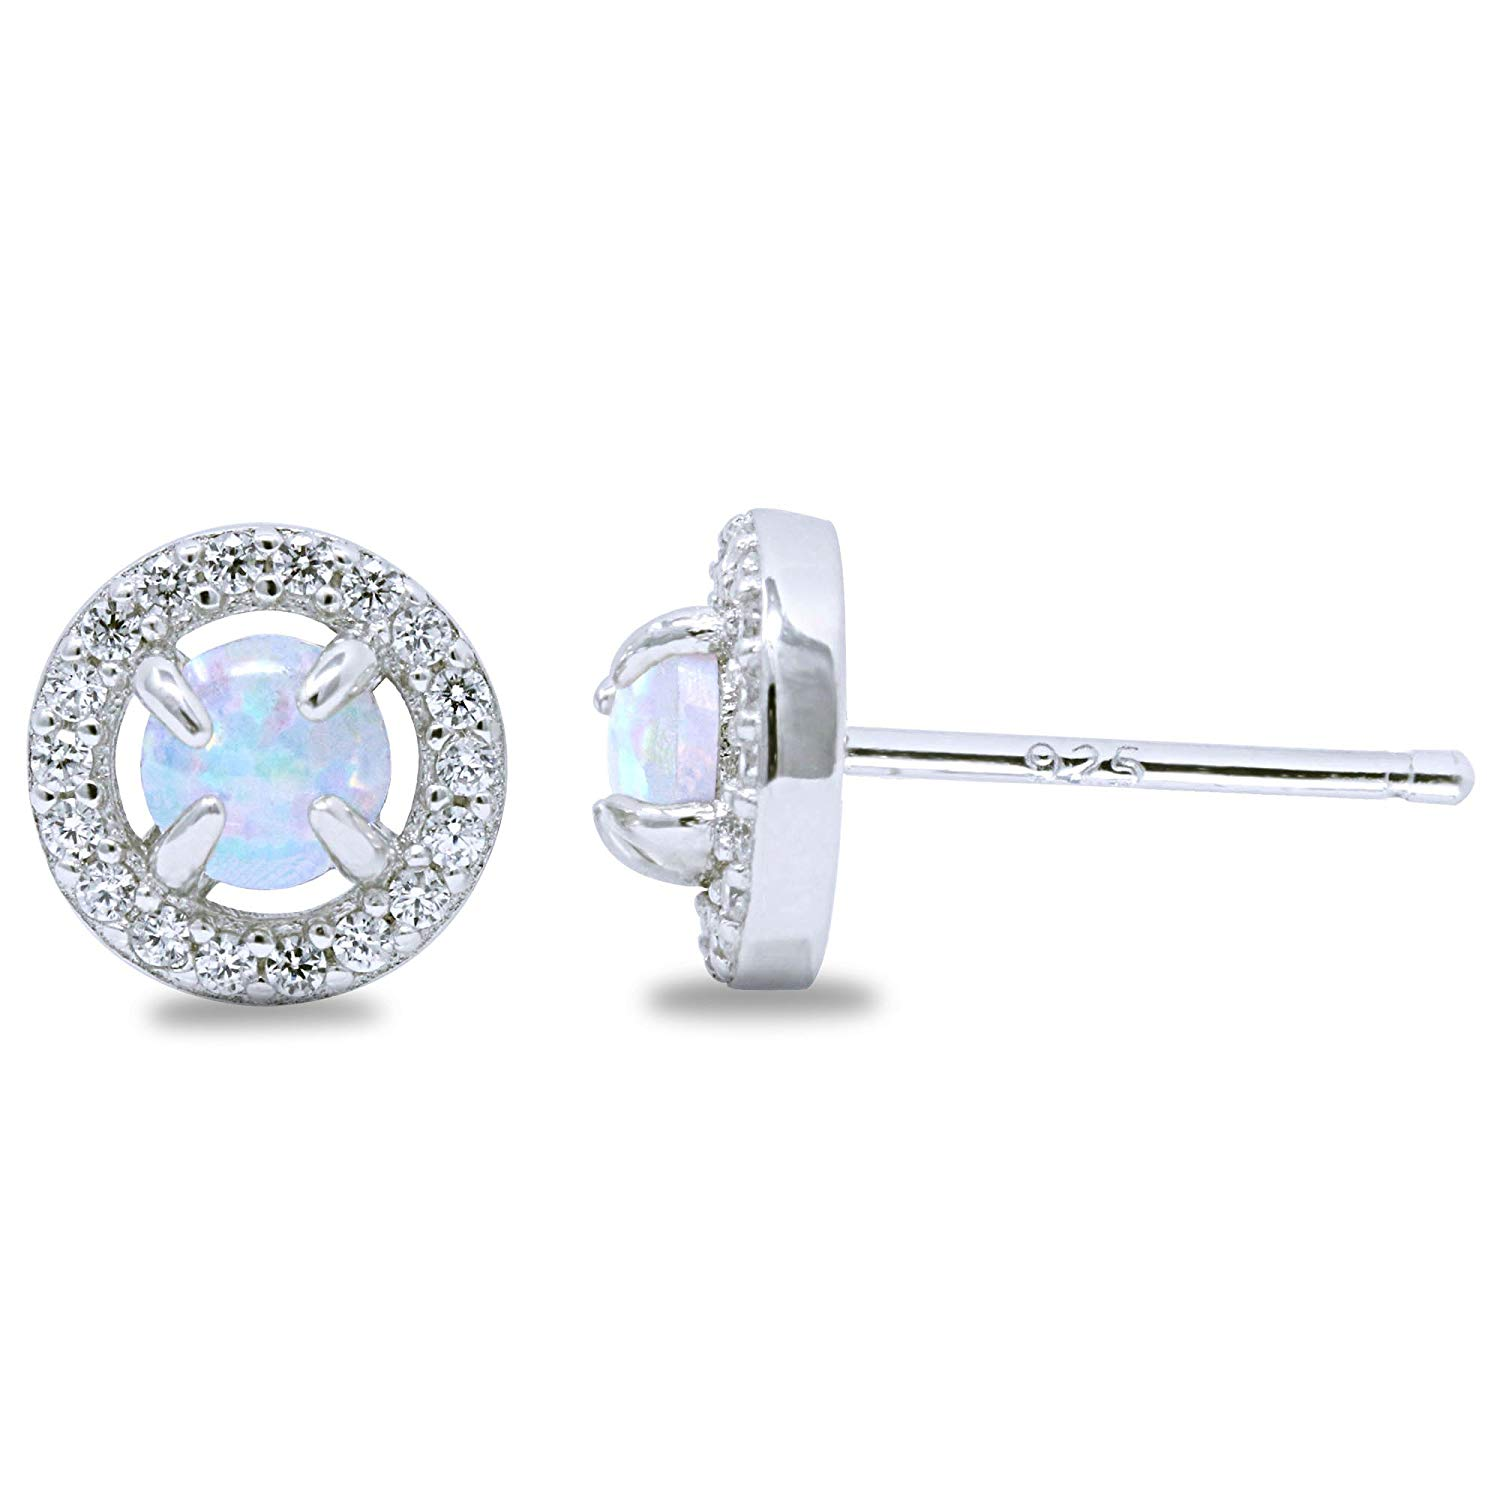 Rhodium Plated Sterling Silver Round Synthetic Opal Halo CZ Stud Earrings